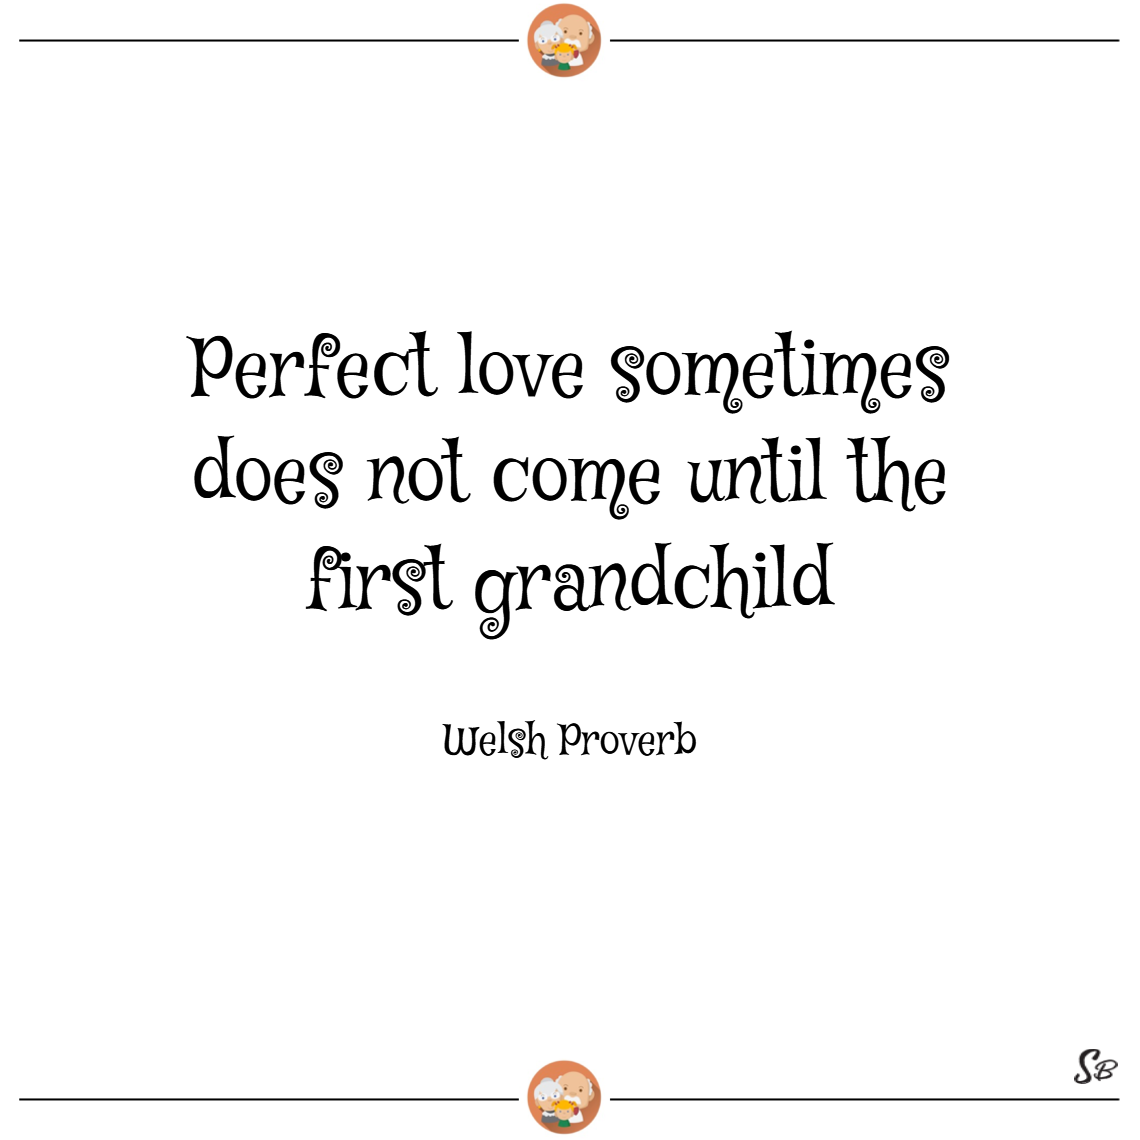 Perfect love sometimes does not come until the first grandchild. – welsh proverb